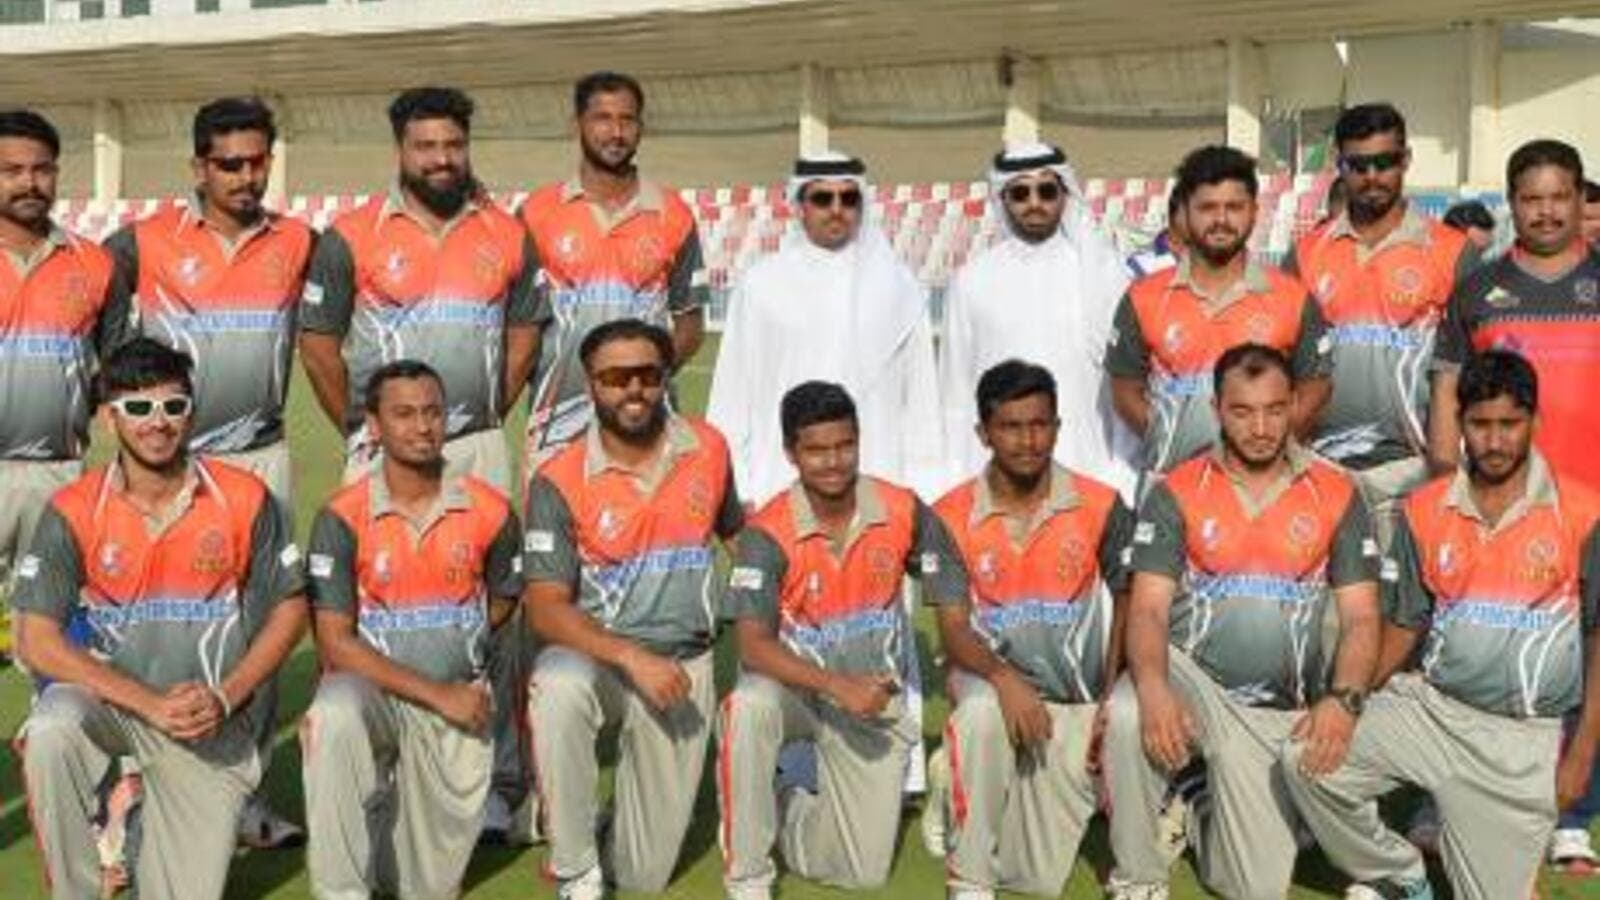 The Bukhatir XI team which won the opening match of the One Stop Tourism 43rd Bukhatir Premier League at the Sharjah Cricket Stadium with Waleed Bukhatir and Khalaf Bukhatir. (Photo: SCC)